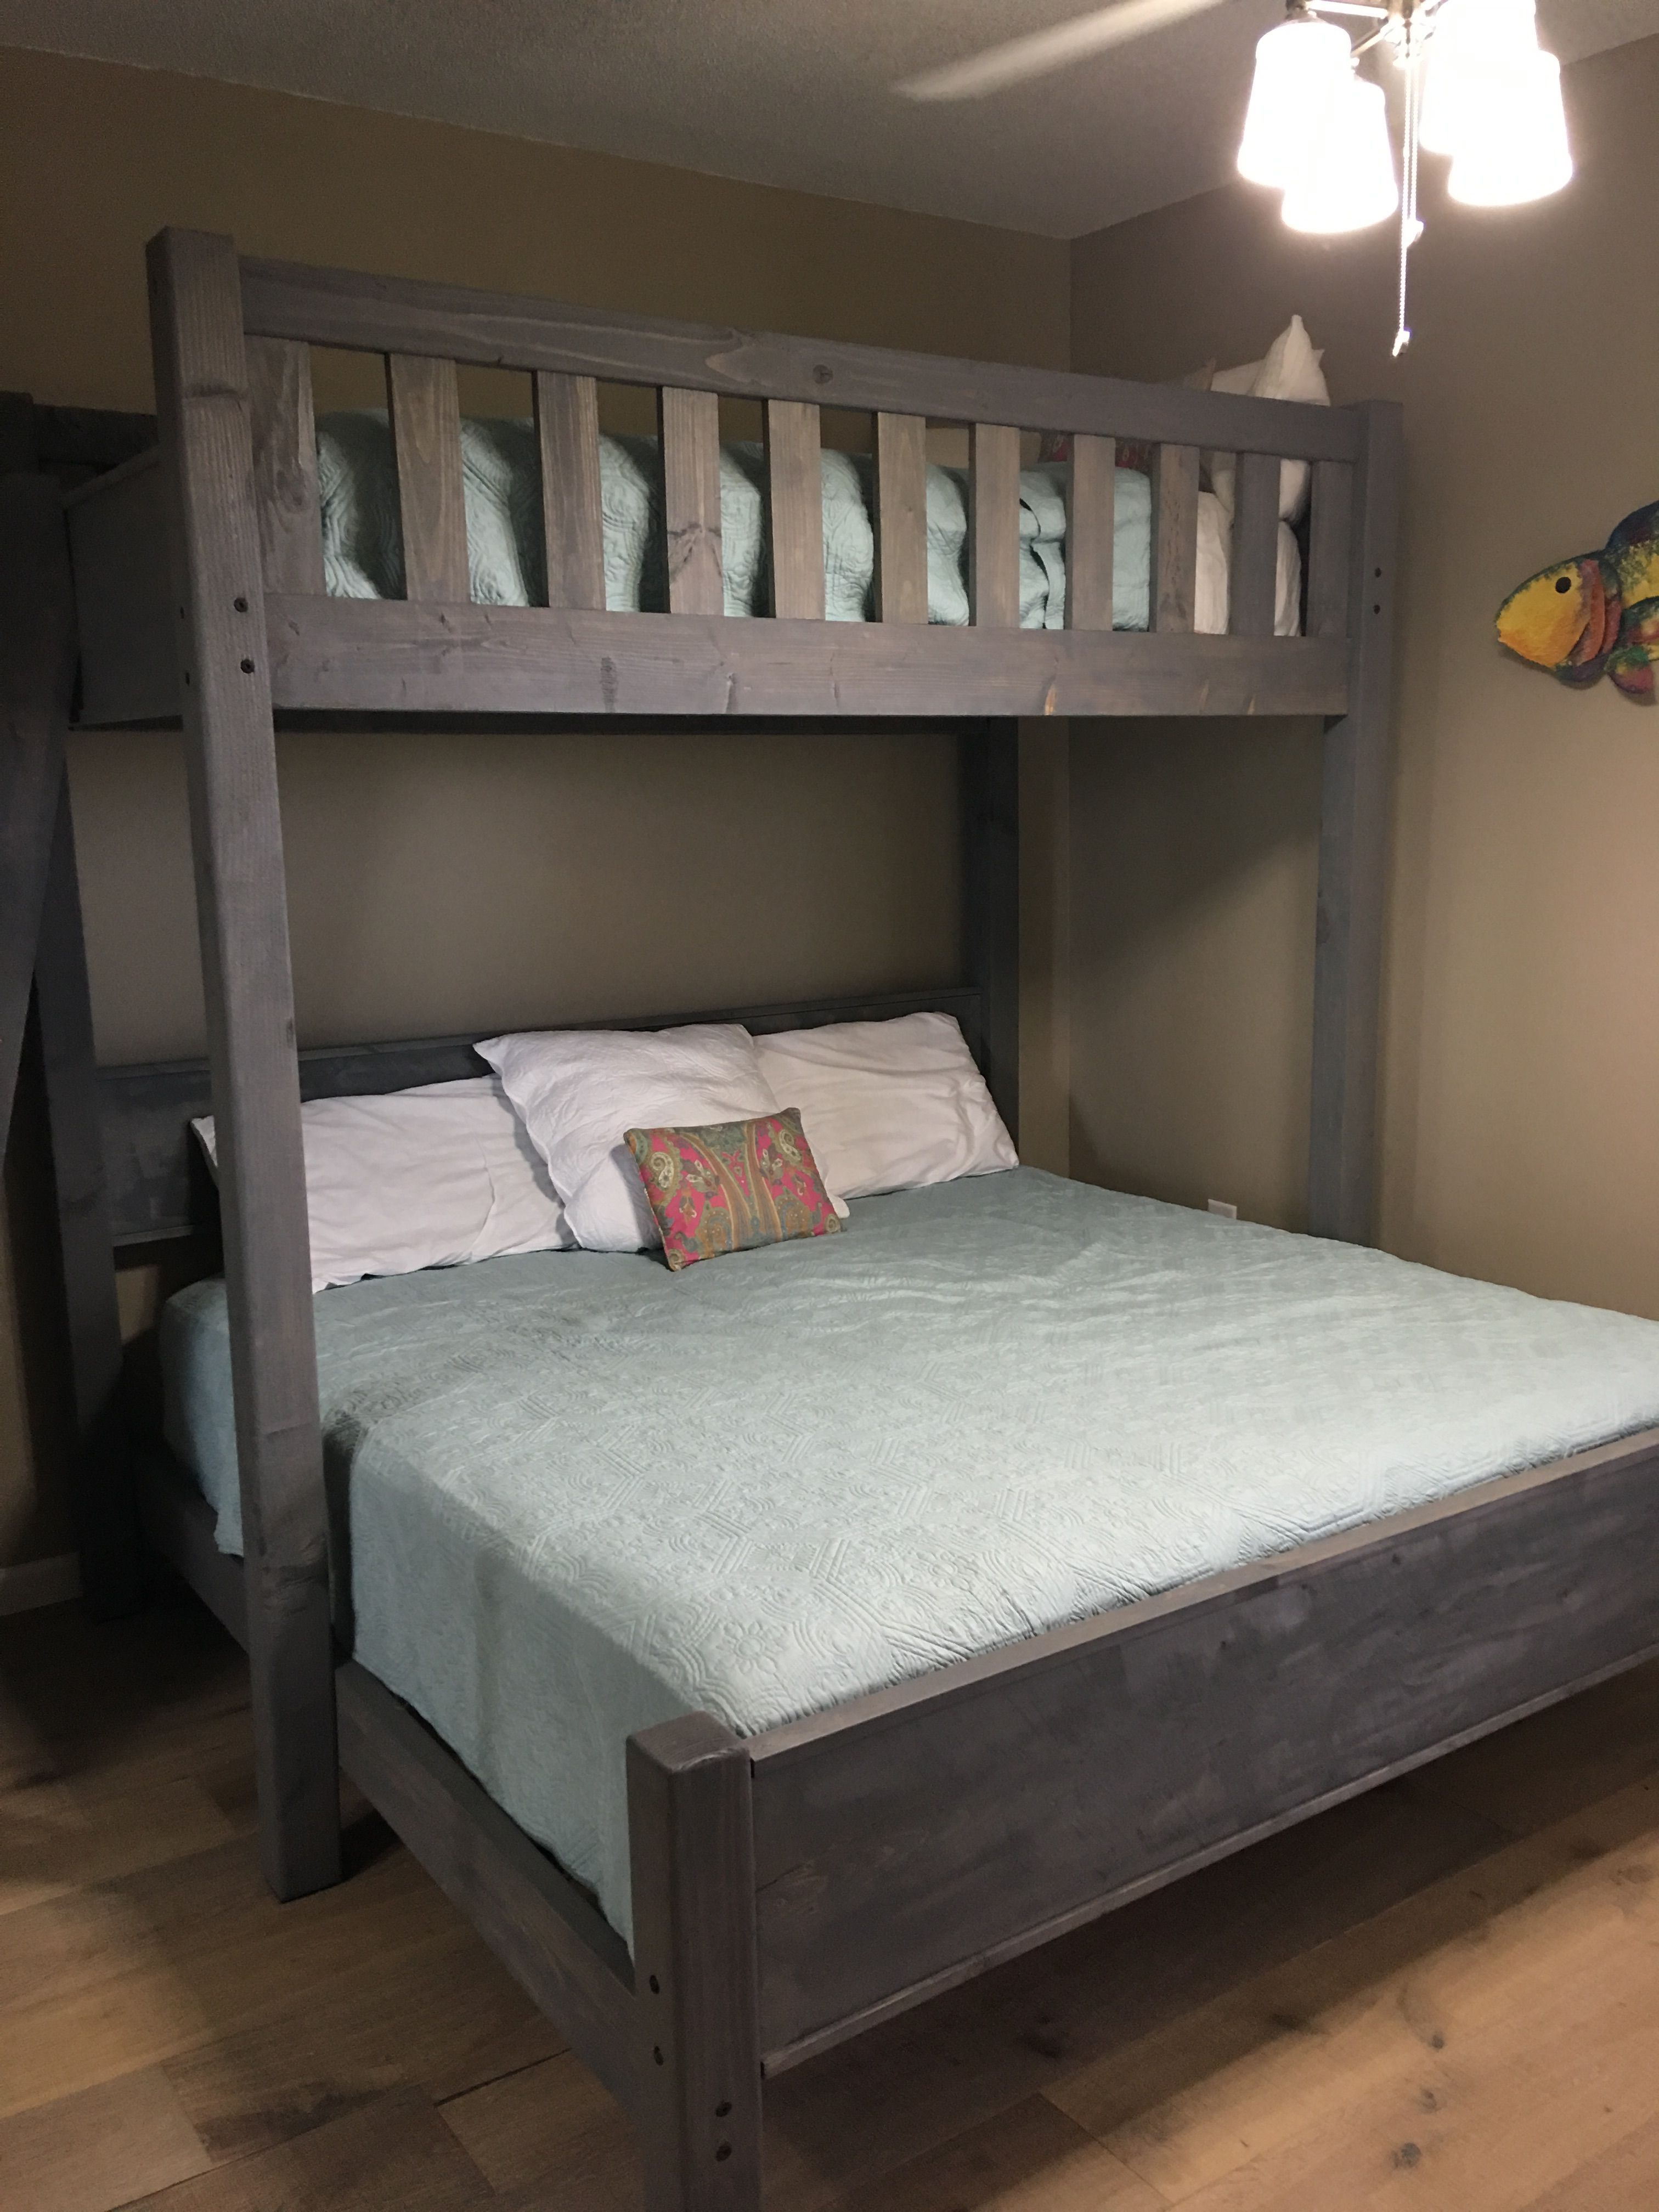 Custom bunk bed in twin over king or twin over queen. At